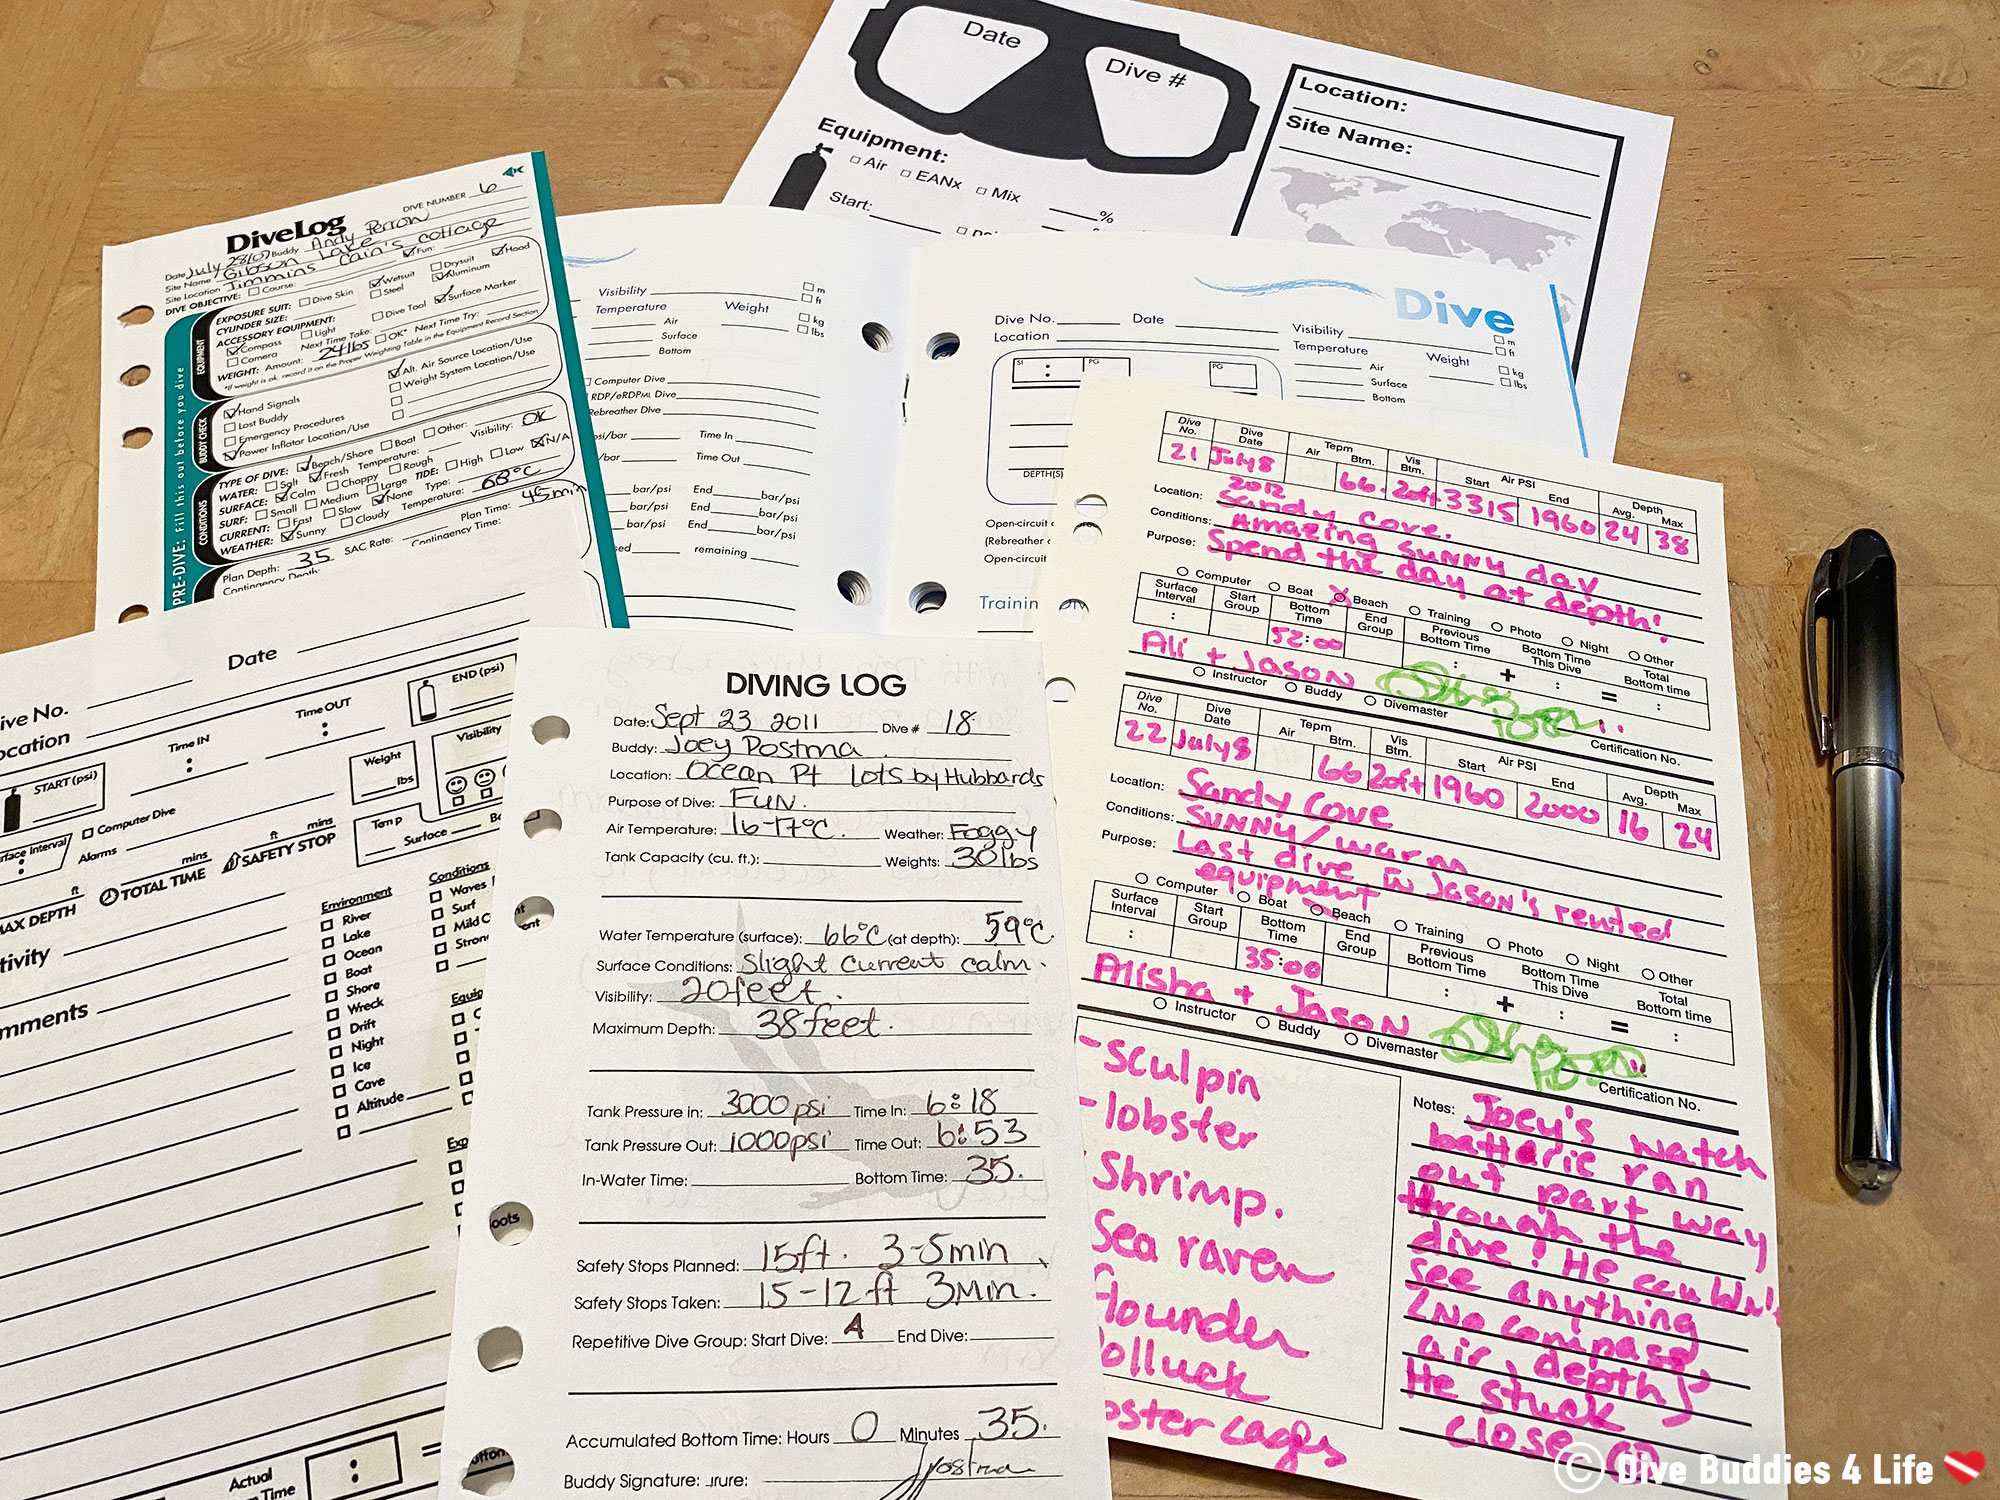 Sample Printouts Of A Variety Of Scuba Diving Logbook Pages To Record Dives